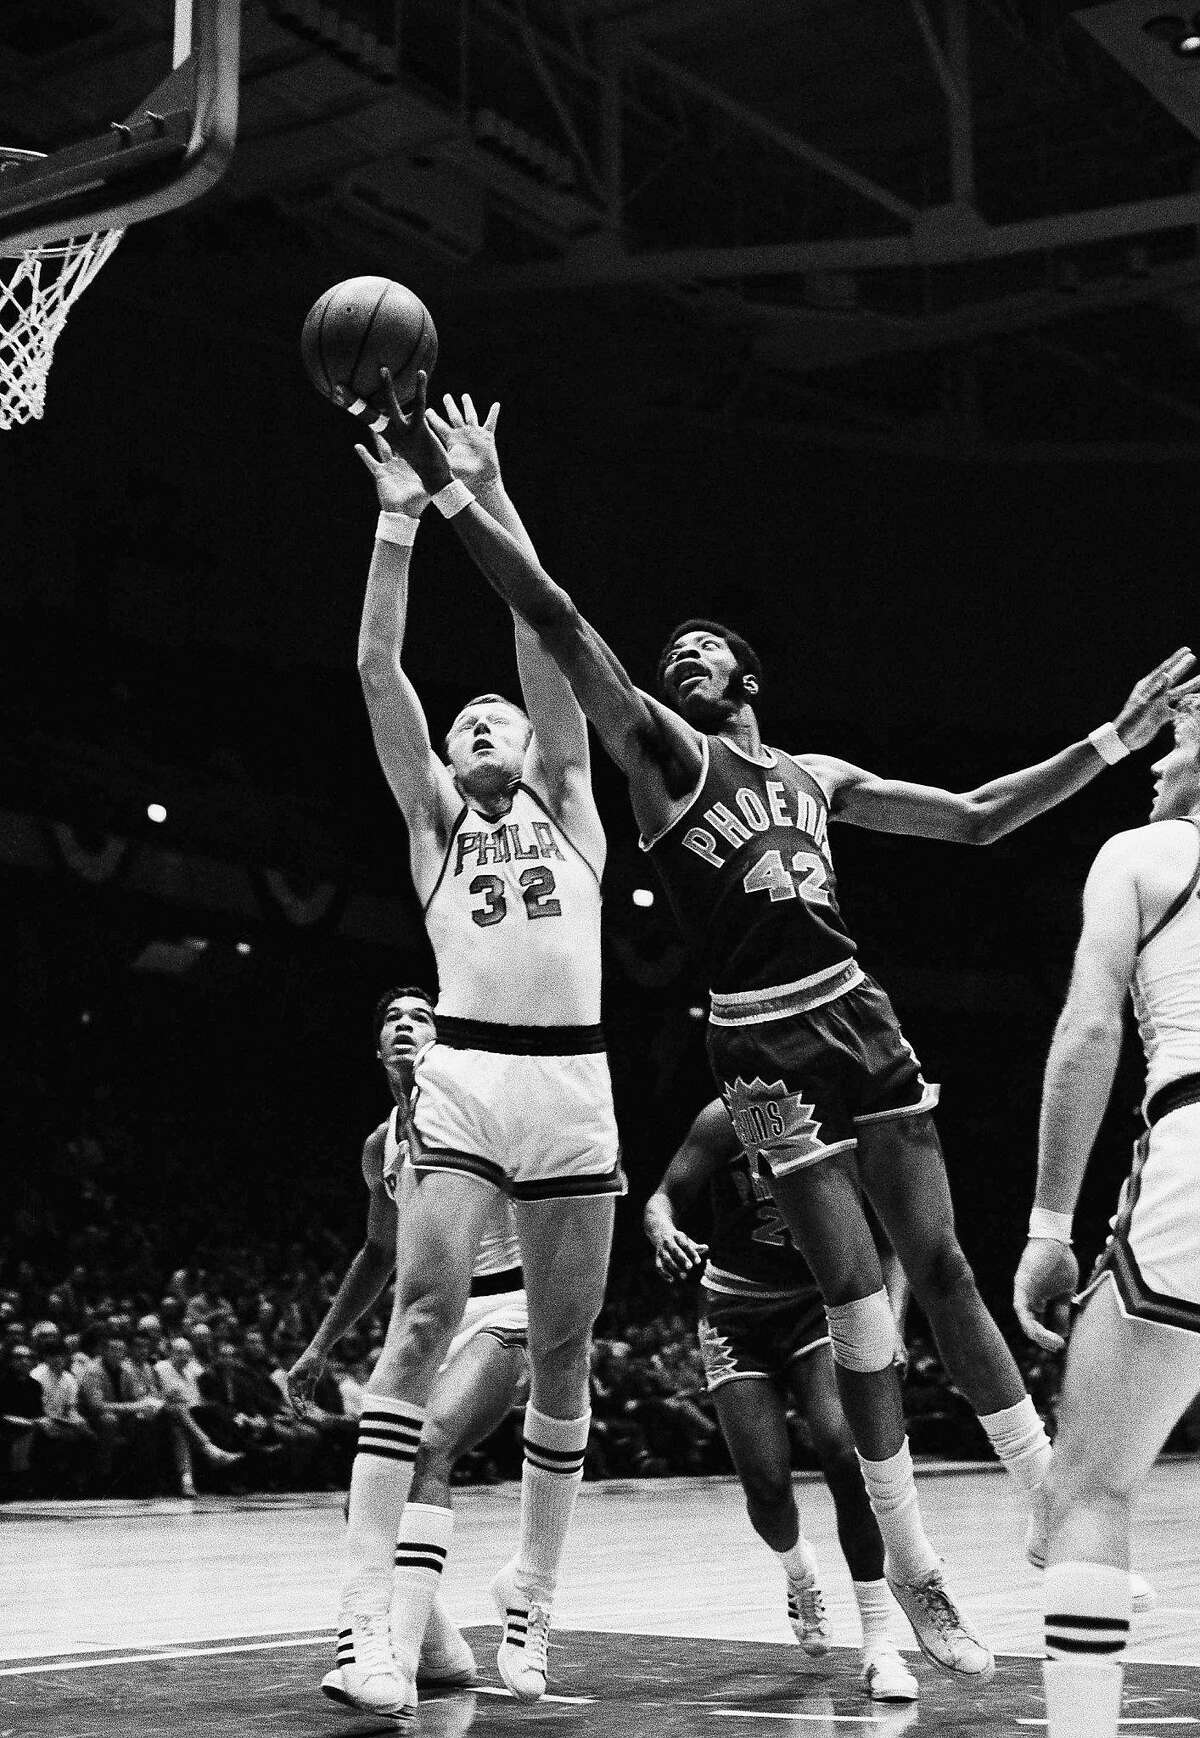 FILE - In this Oct. 22, 1969, file photo, Connie Hawkins (42) of the Phoenix Suns goes to the basket past Billy Cunningham (32) of the Philadelphia 76ers during the first half of a game in Philadelphia. Basketball great Connie Hawkins has died at 75. The Hall of Famer's death was announced in a statement Saturday, Oct. 7, 2017, by the Phoenix Suns, the team with which he spent his most productive NBA seasons. The Suns told The Associated Press they confirmed the death with his family. The 6-foot-8 Hawkins was a dazzling playground legend in New York City who rose to basketball's heights. The Suns lauded his